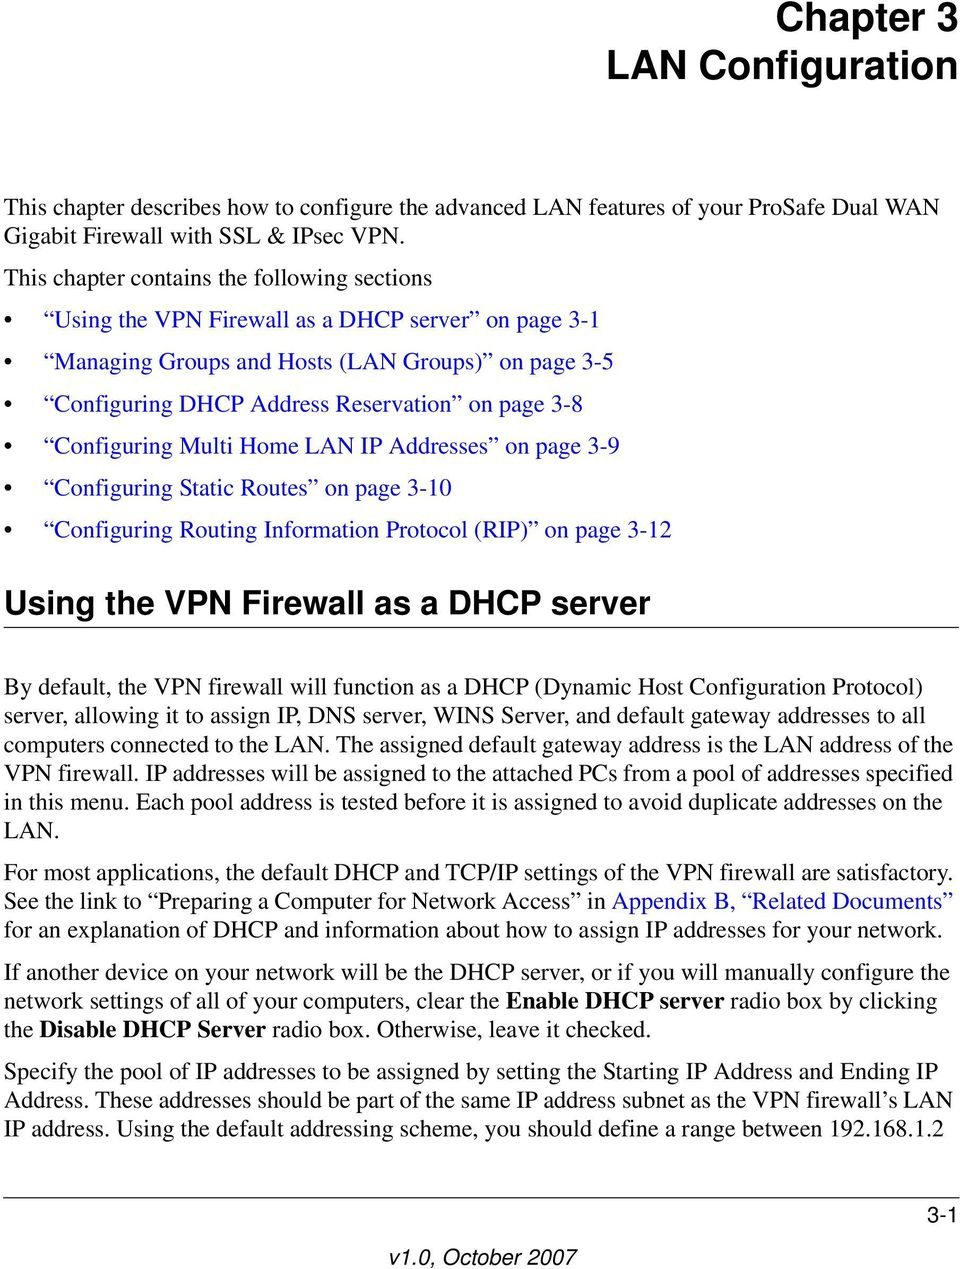 Configuring Multi Home LAN IP Addresses on page 3-9 Configuring Static Routes on page 3-10 Configuring Routing Information Protocol (RIP) on page 3-12 Using the VPN Firewall as a DHCP server By